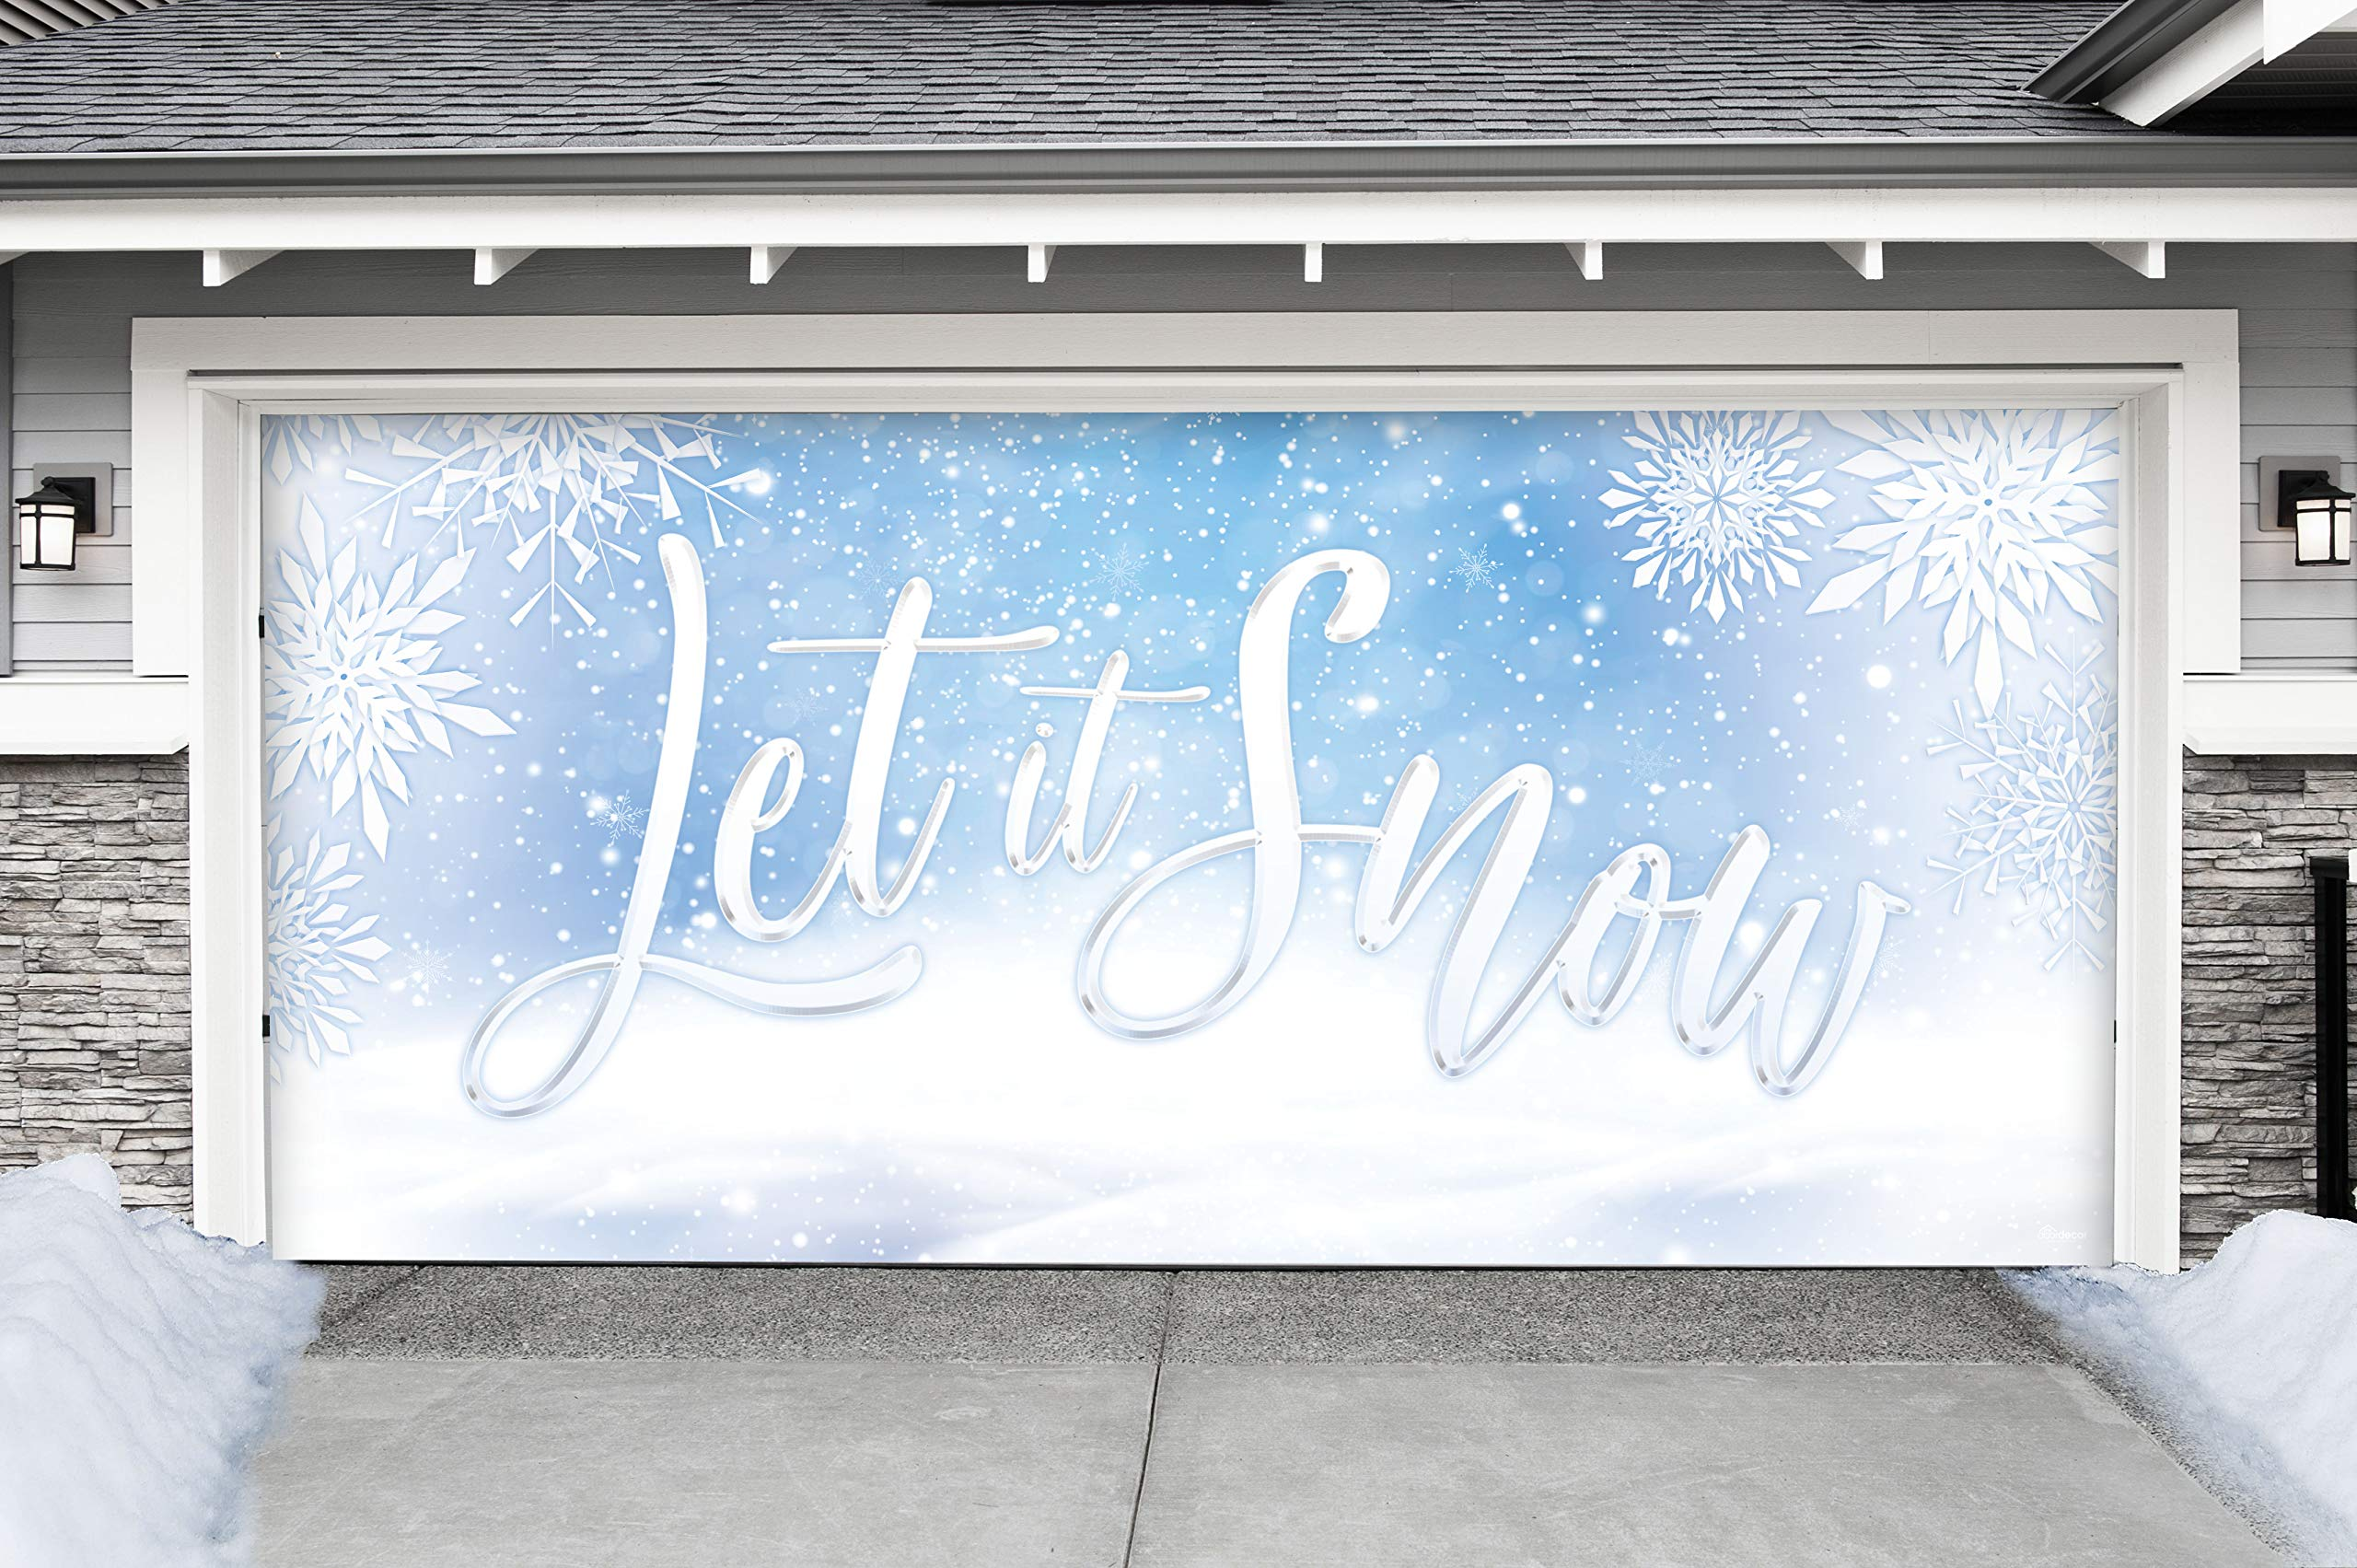 Victory Corps Let it Snow - Holiday Garage Door Banner Mural Sign Décor 7'x 16' Car Garage - The Original Holiday Garage Door Banner Decor